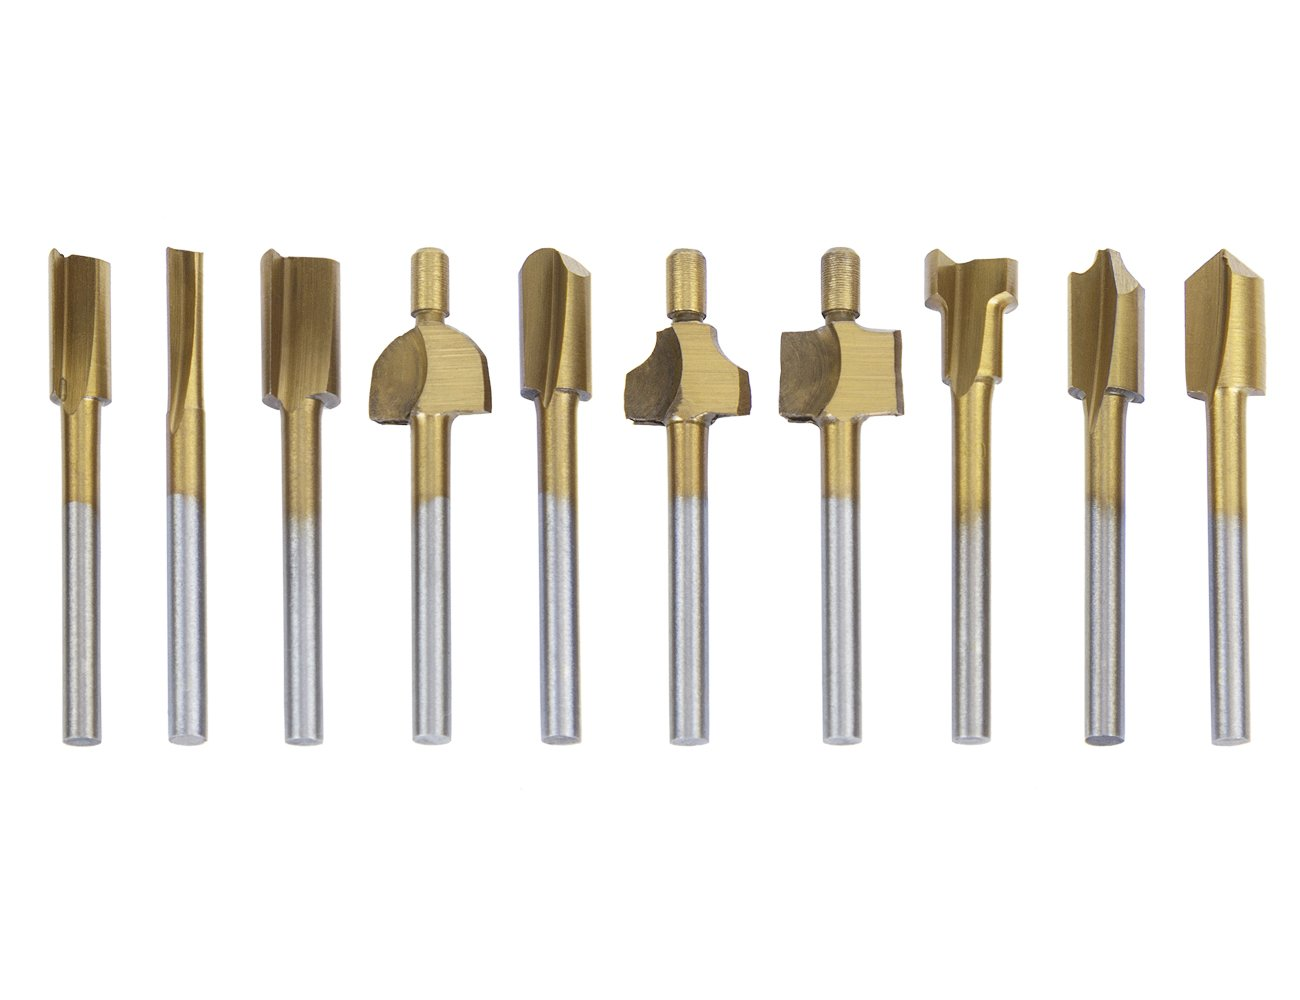 """Tonsiki 10 Pieces Titanium-Coated 1/8""""(3mm) Shank Router Bits Milling Cutter Fit Dremel Rotary Tools for DIY Woodworking, Carving, Engraving, Drilling"""